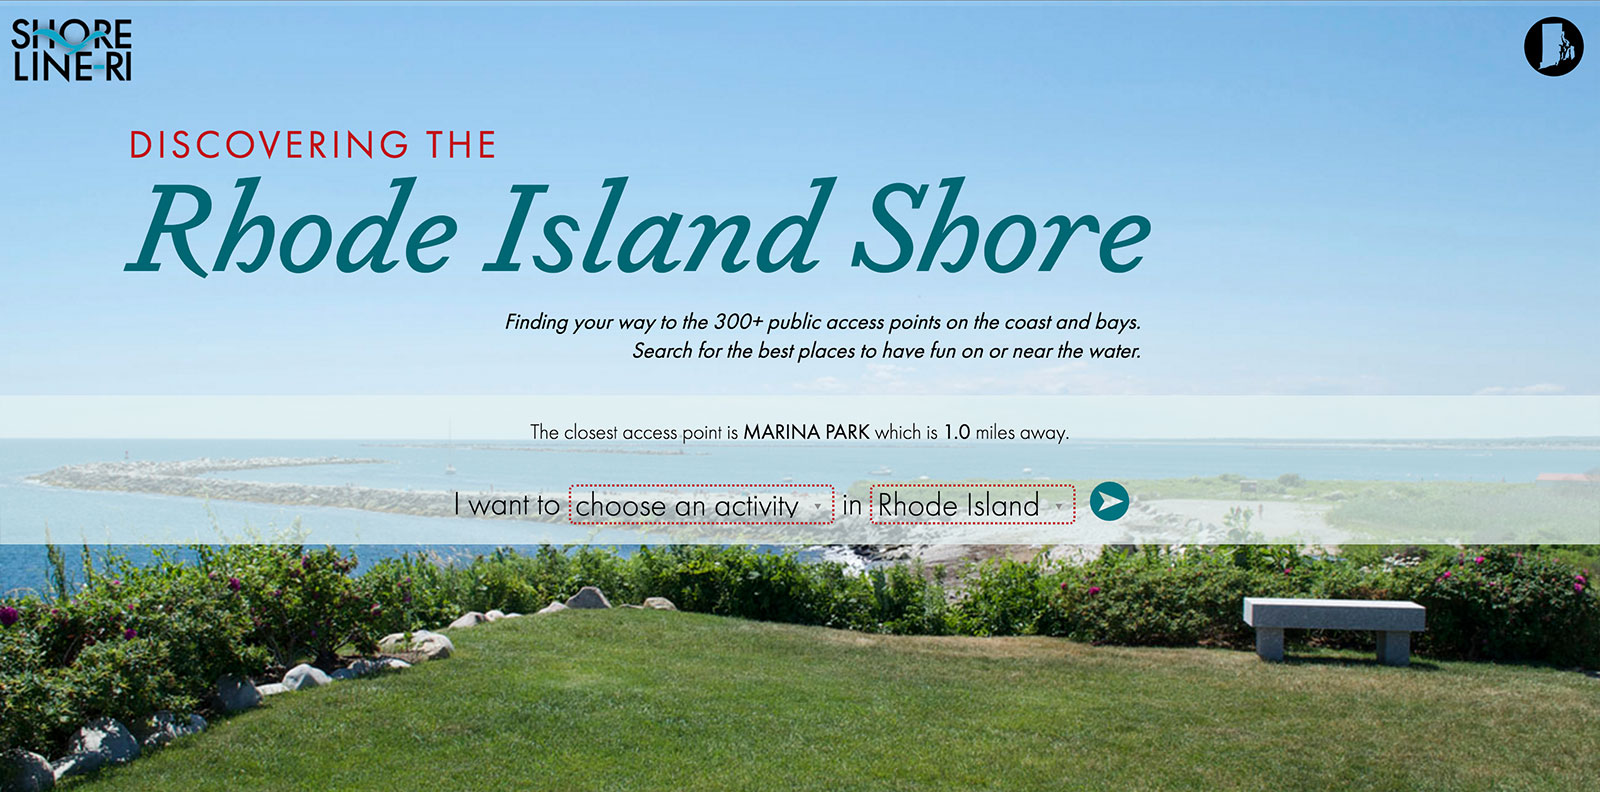 Discovering The Rhode Island Shore Web App